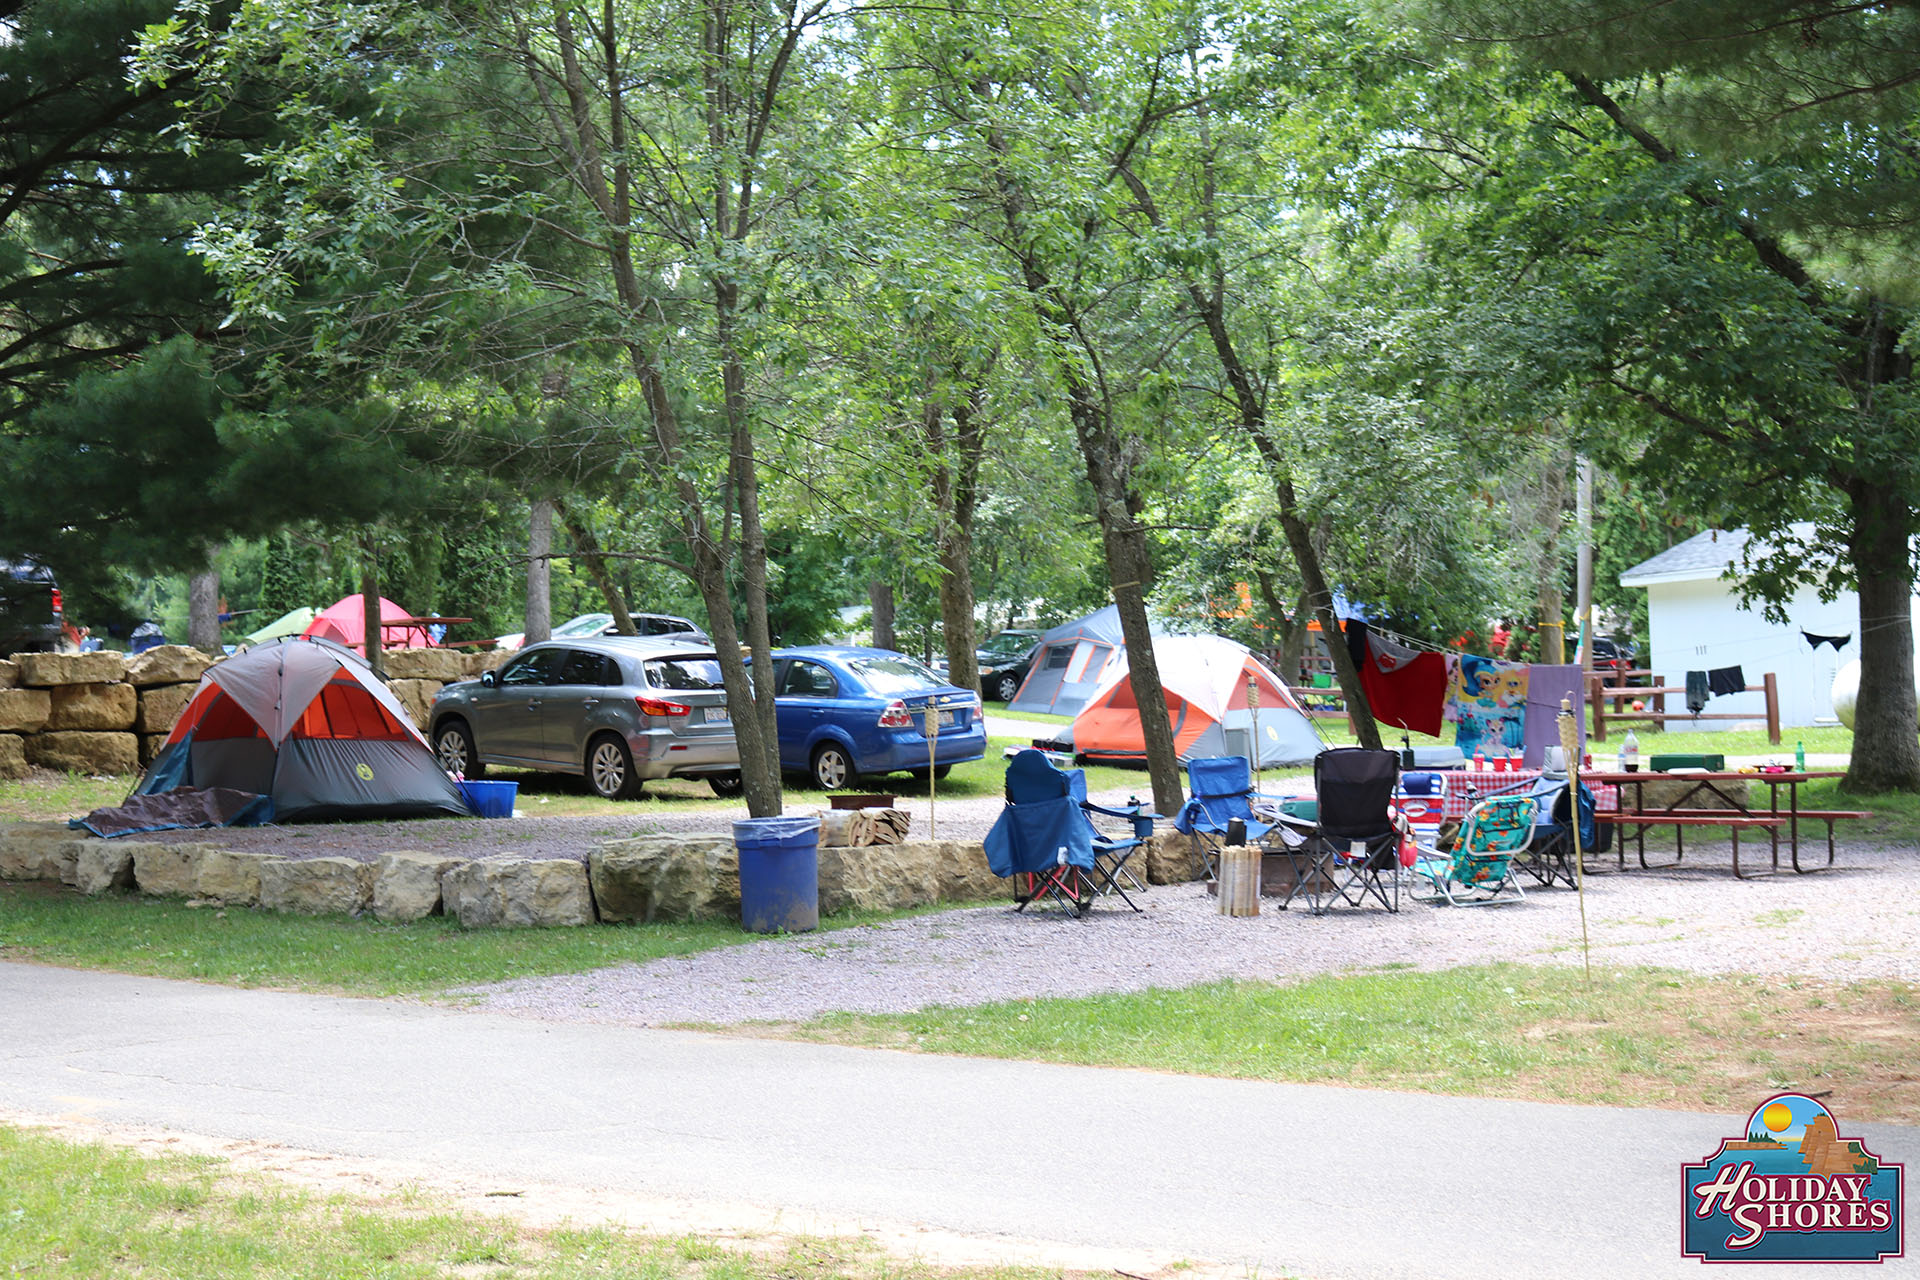 Stay With Us Holiday Shores Wisconsin Dells Camping